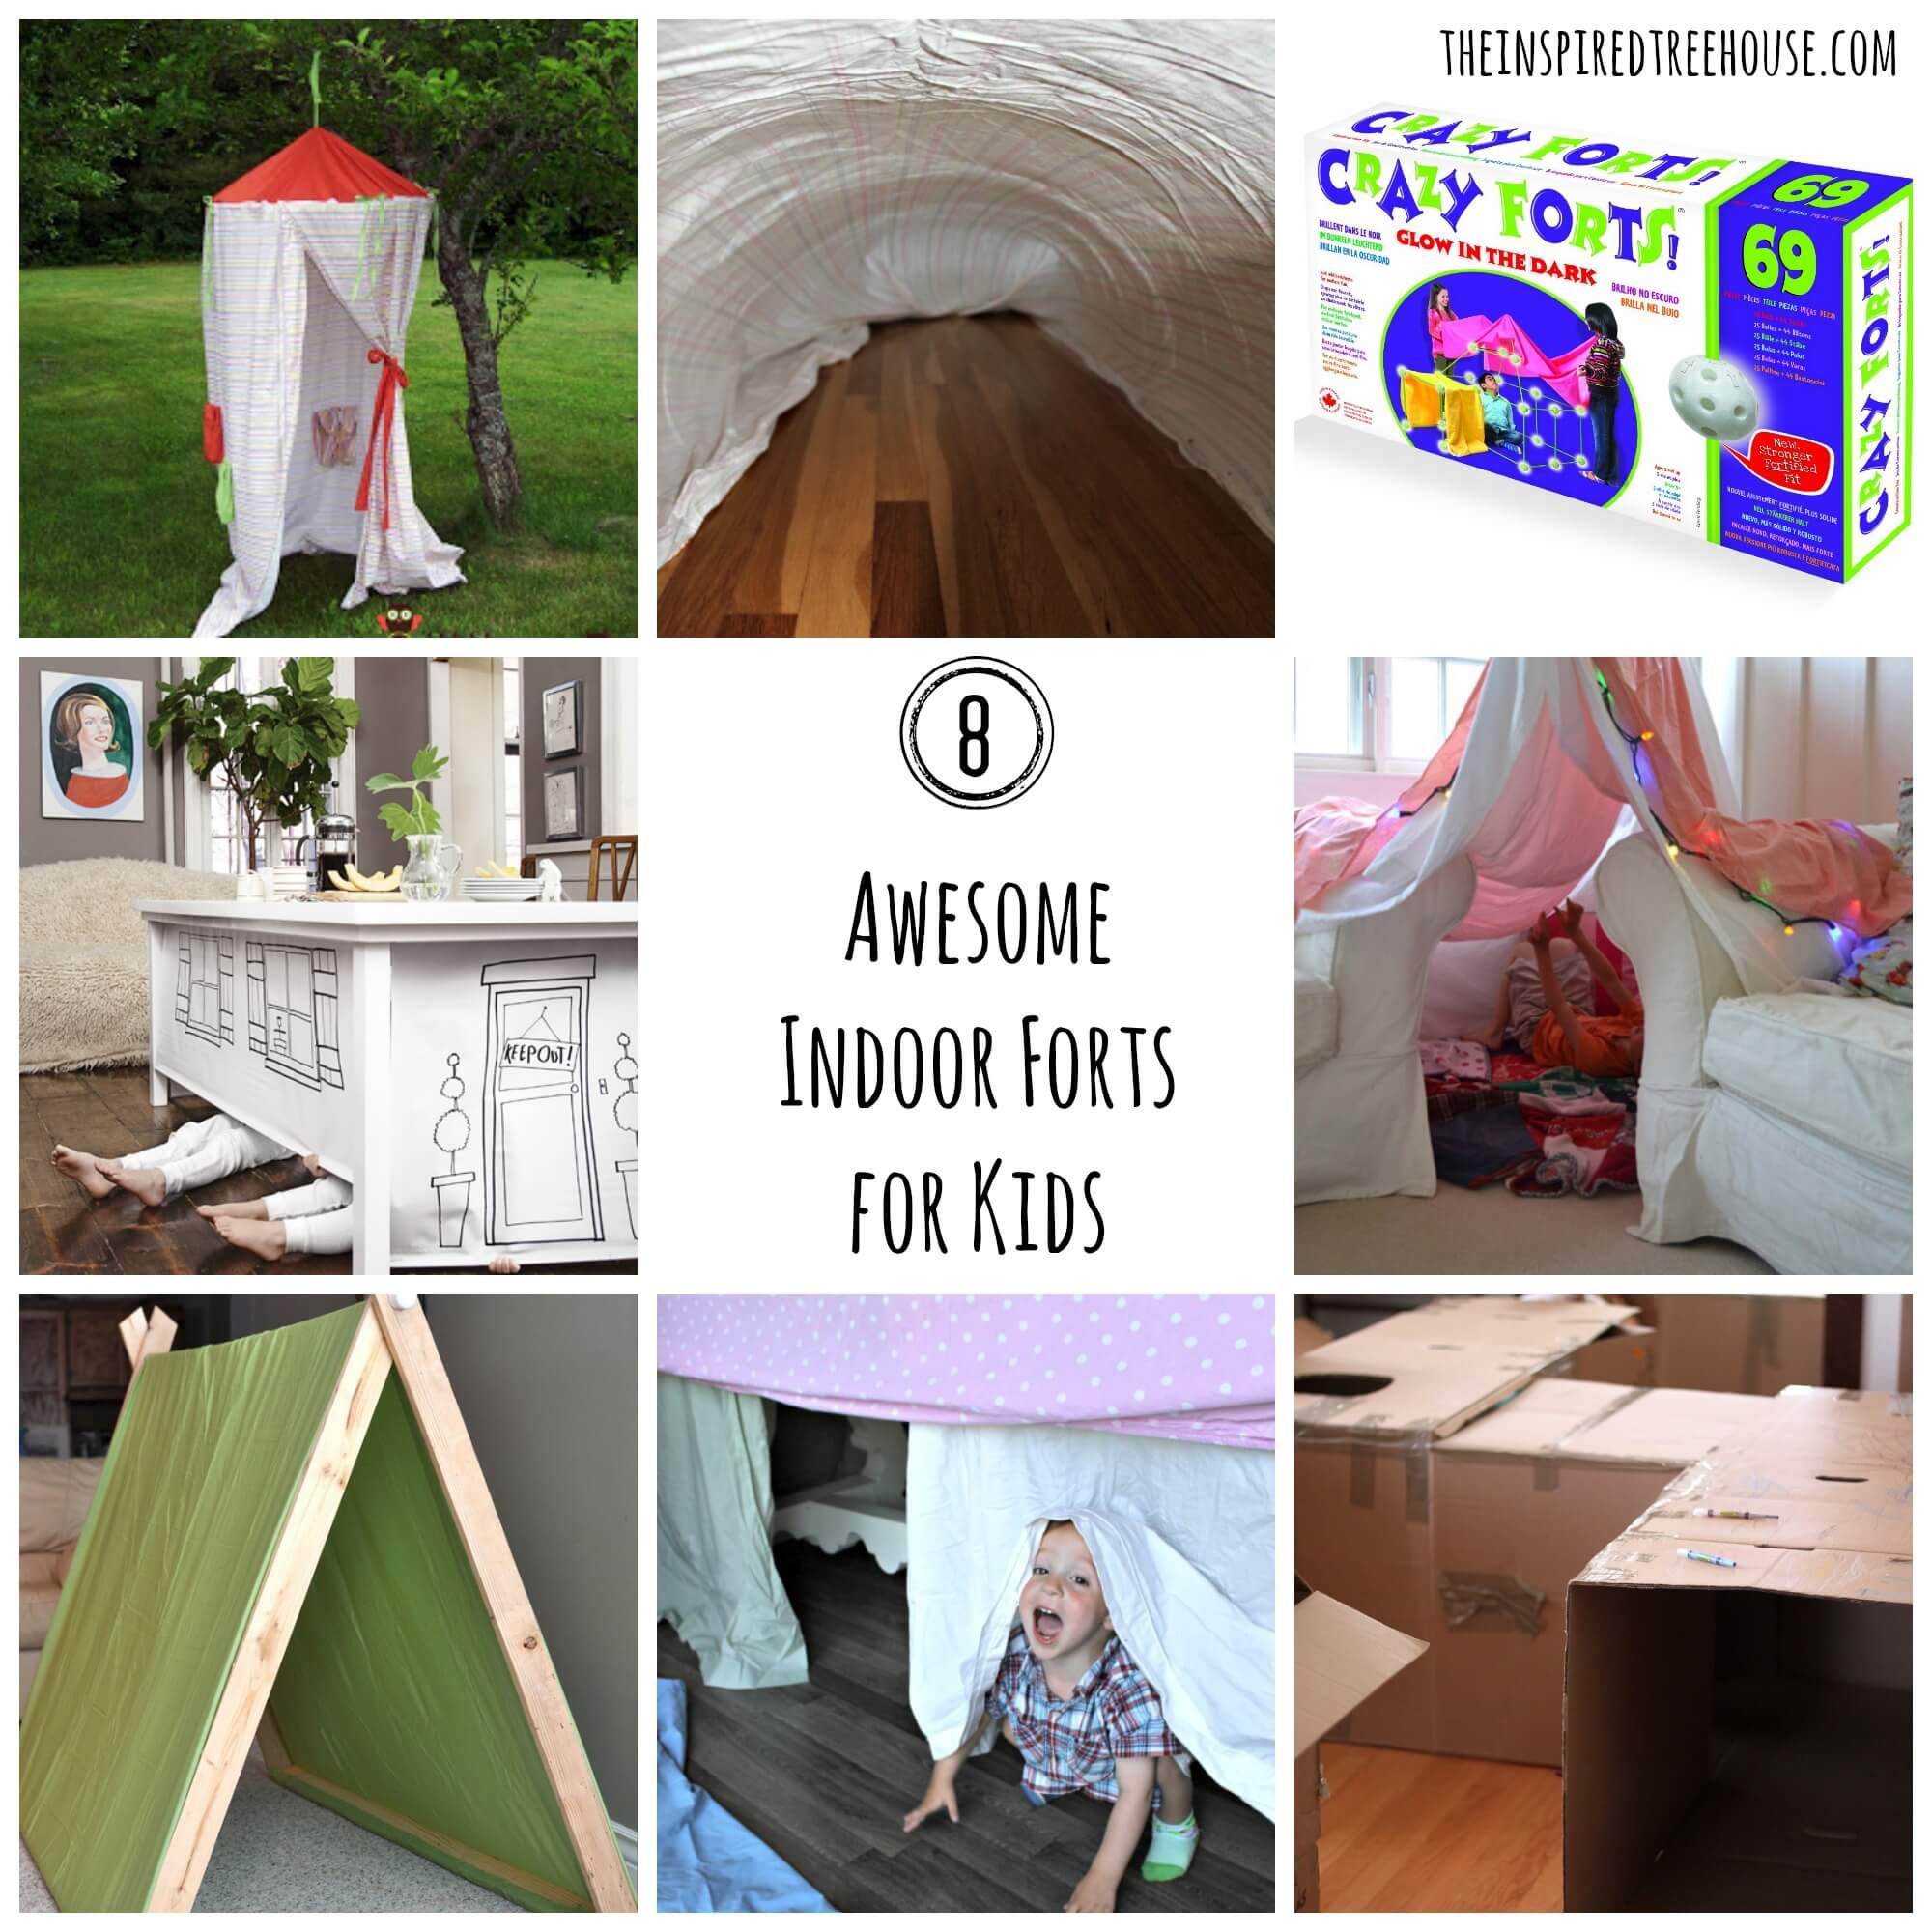 Activities For Kids 8 Awesome Indoor Fort Ideas